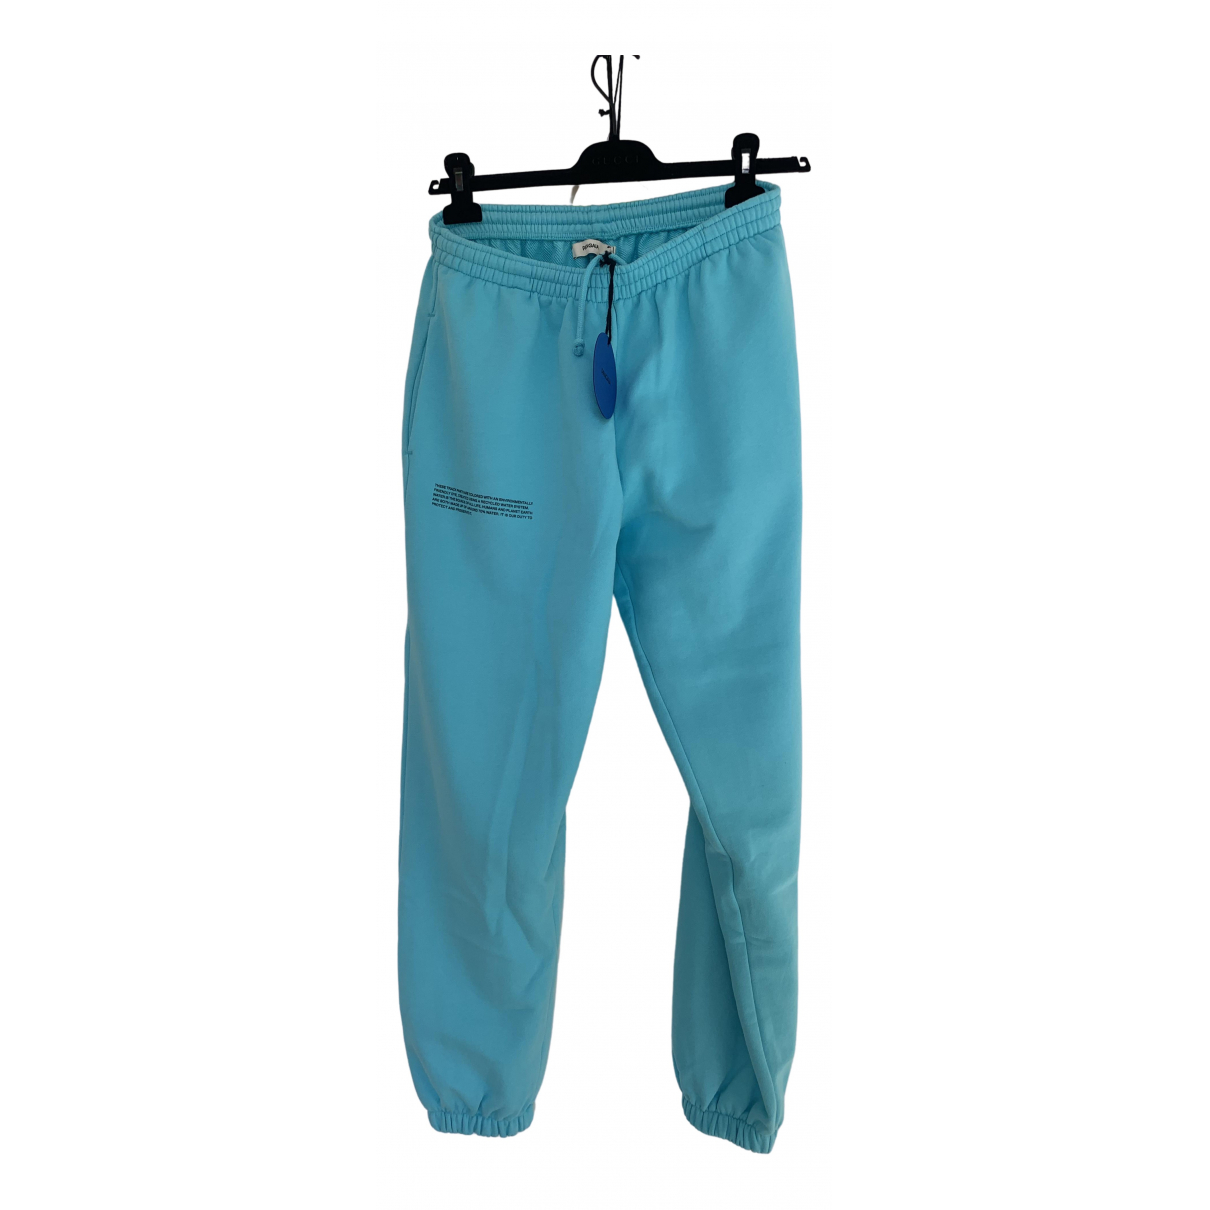 The Pangaia \N Turquoise Cotton Trousers for Men S International